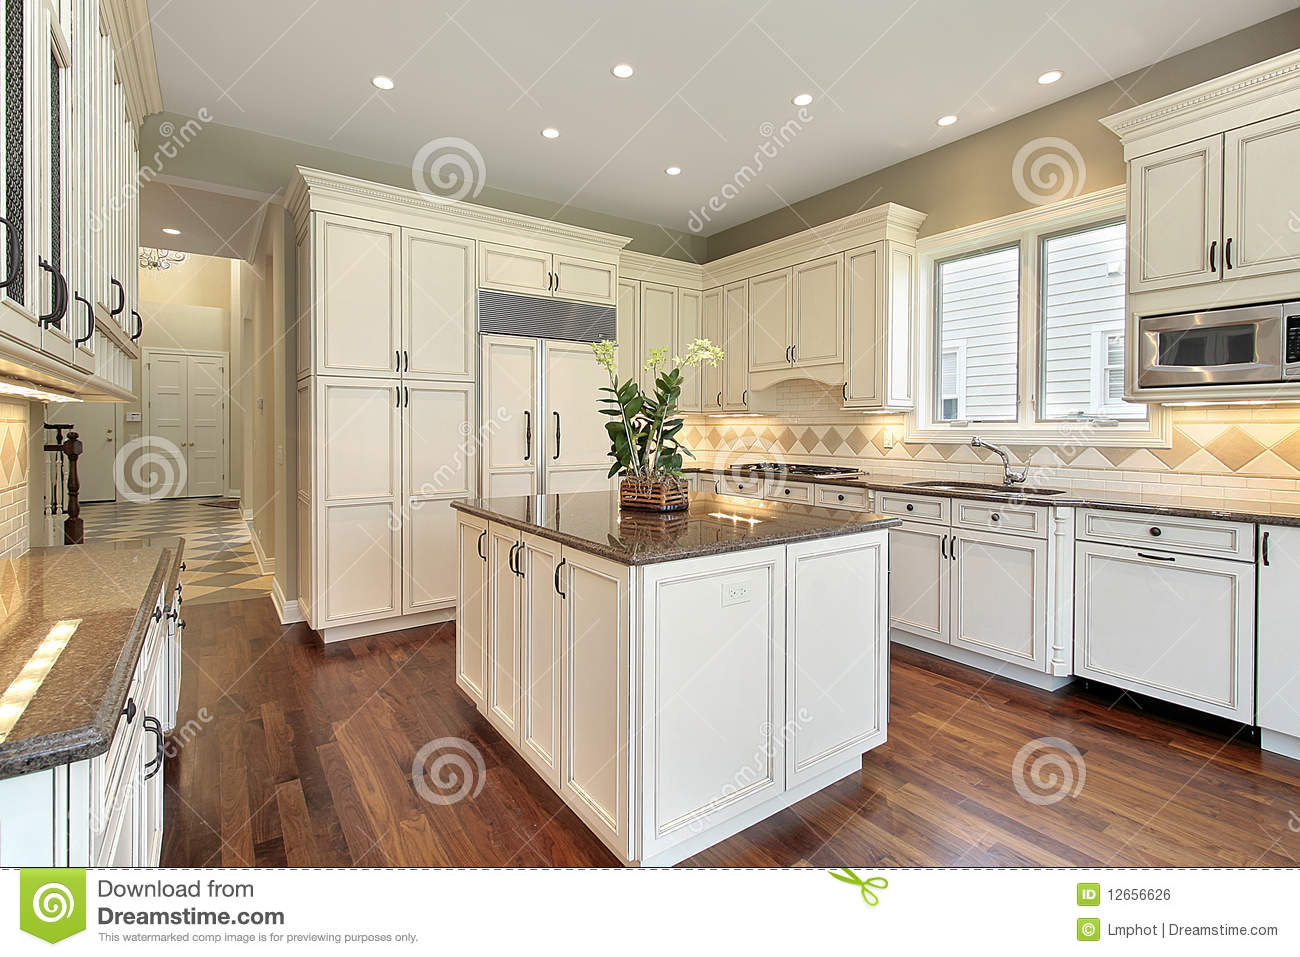 kitchen with marble island royalty free stock image image 12656626 home island kitchen